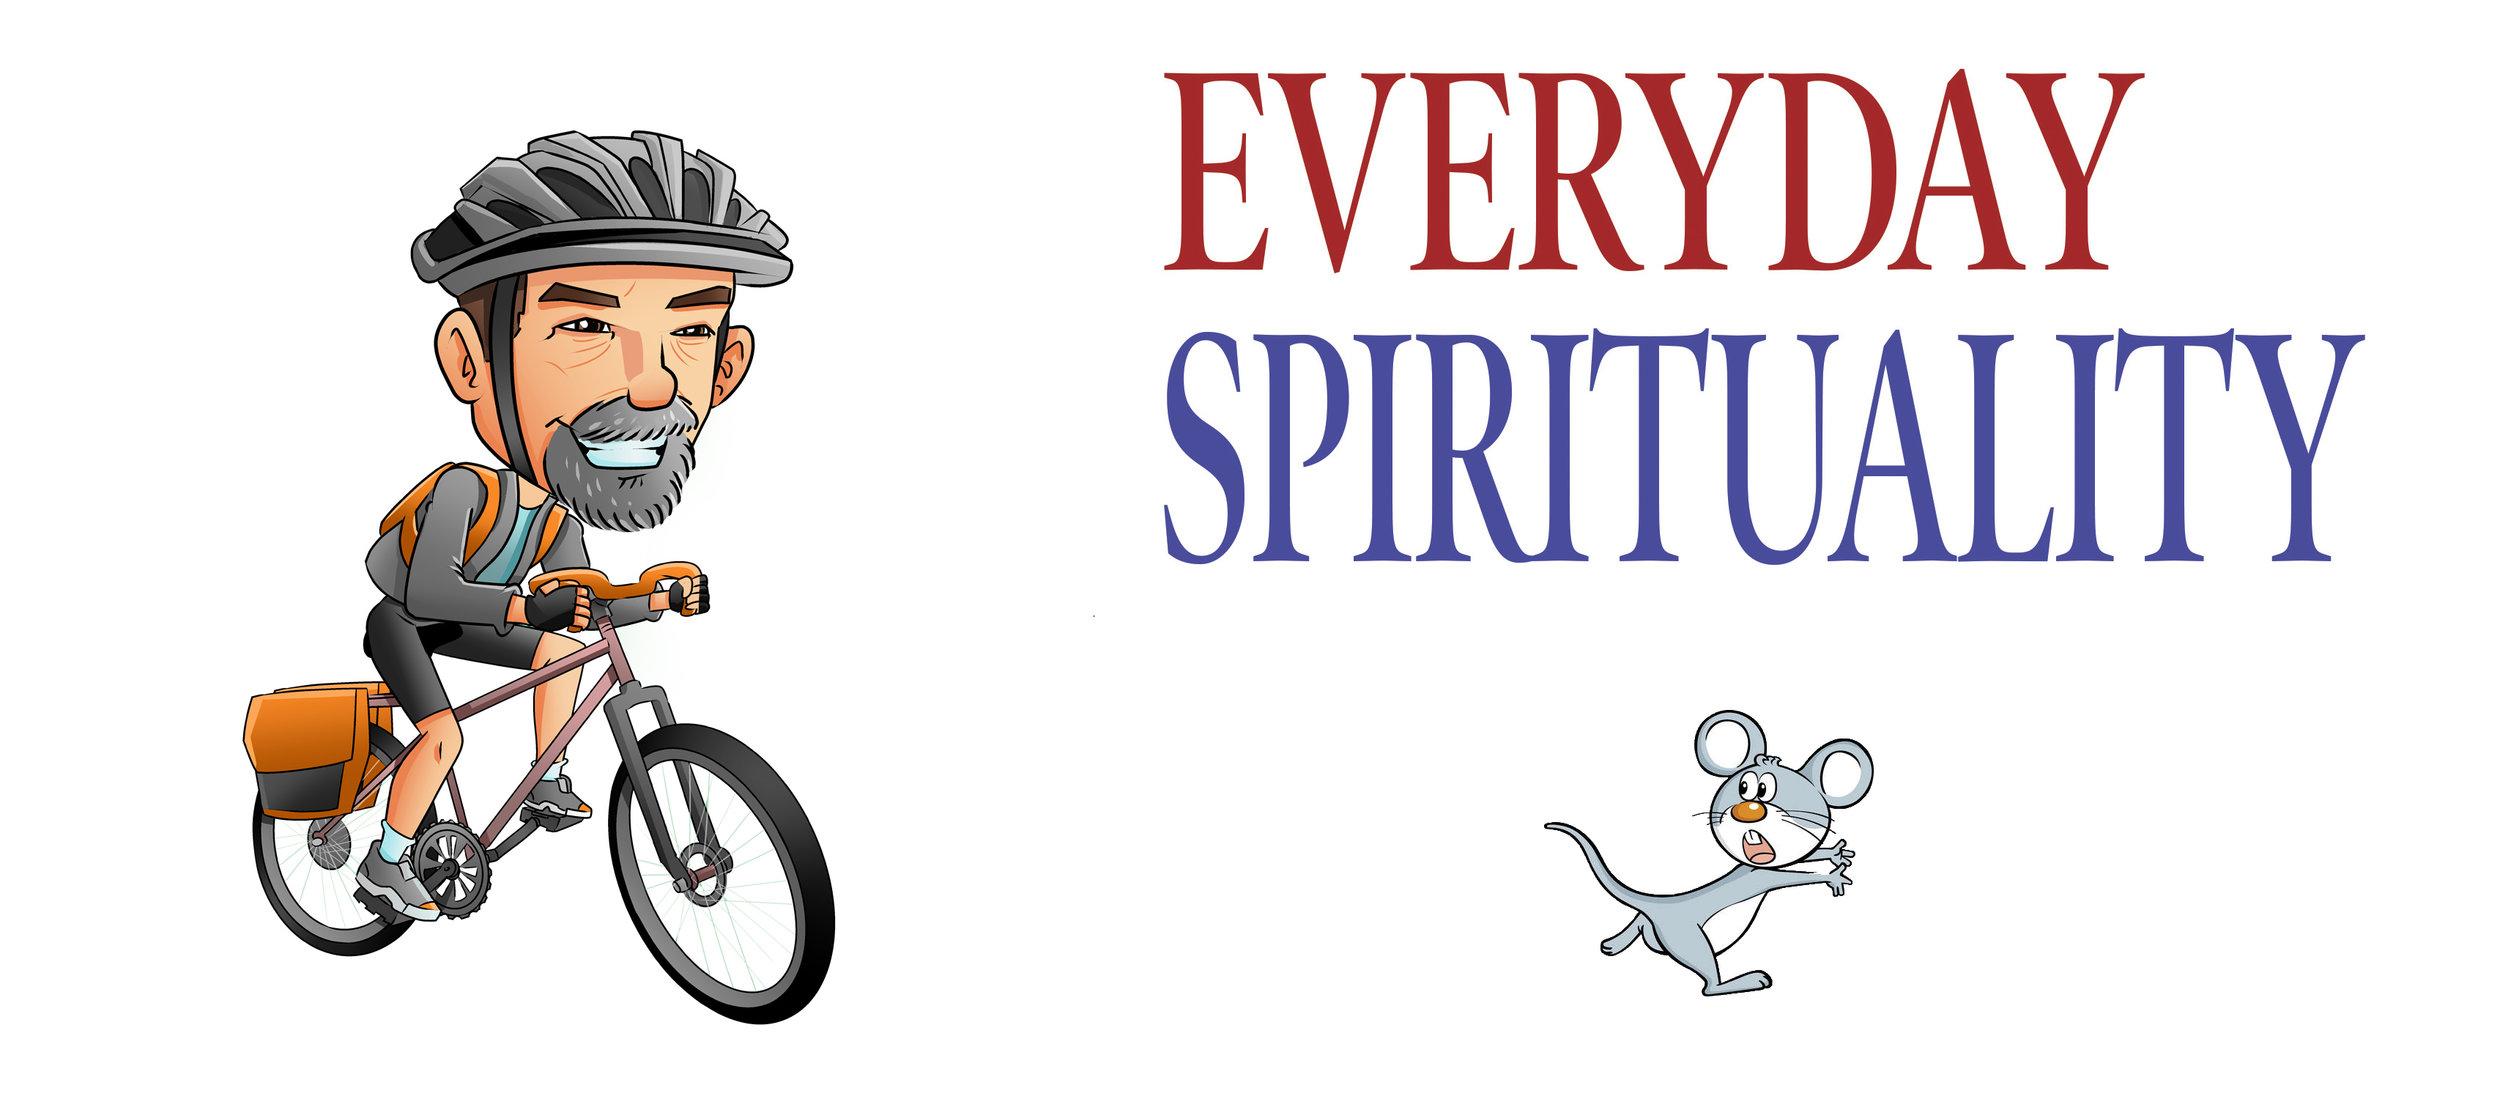 jim EverydaySpirituality HEADER CLEAR.jpg